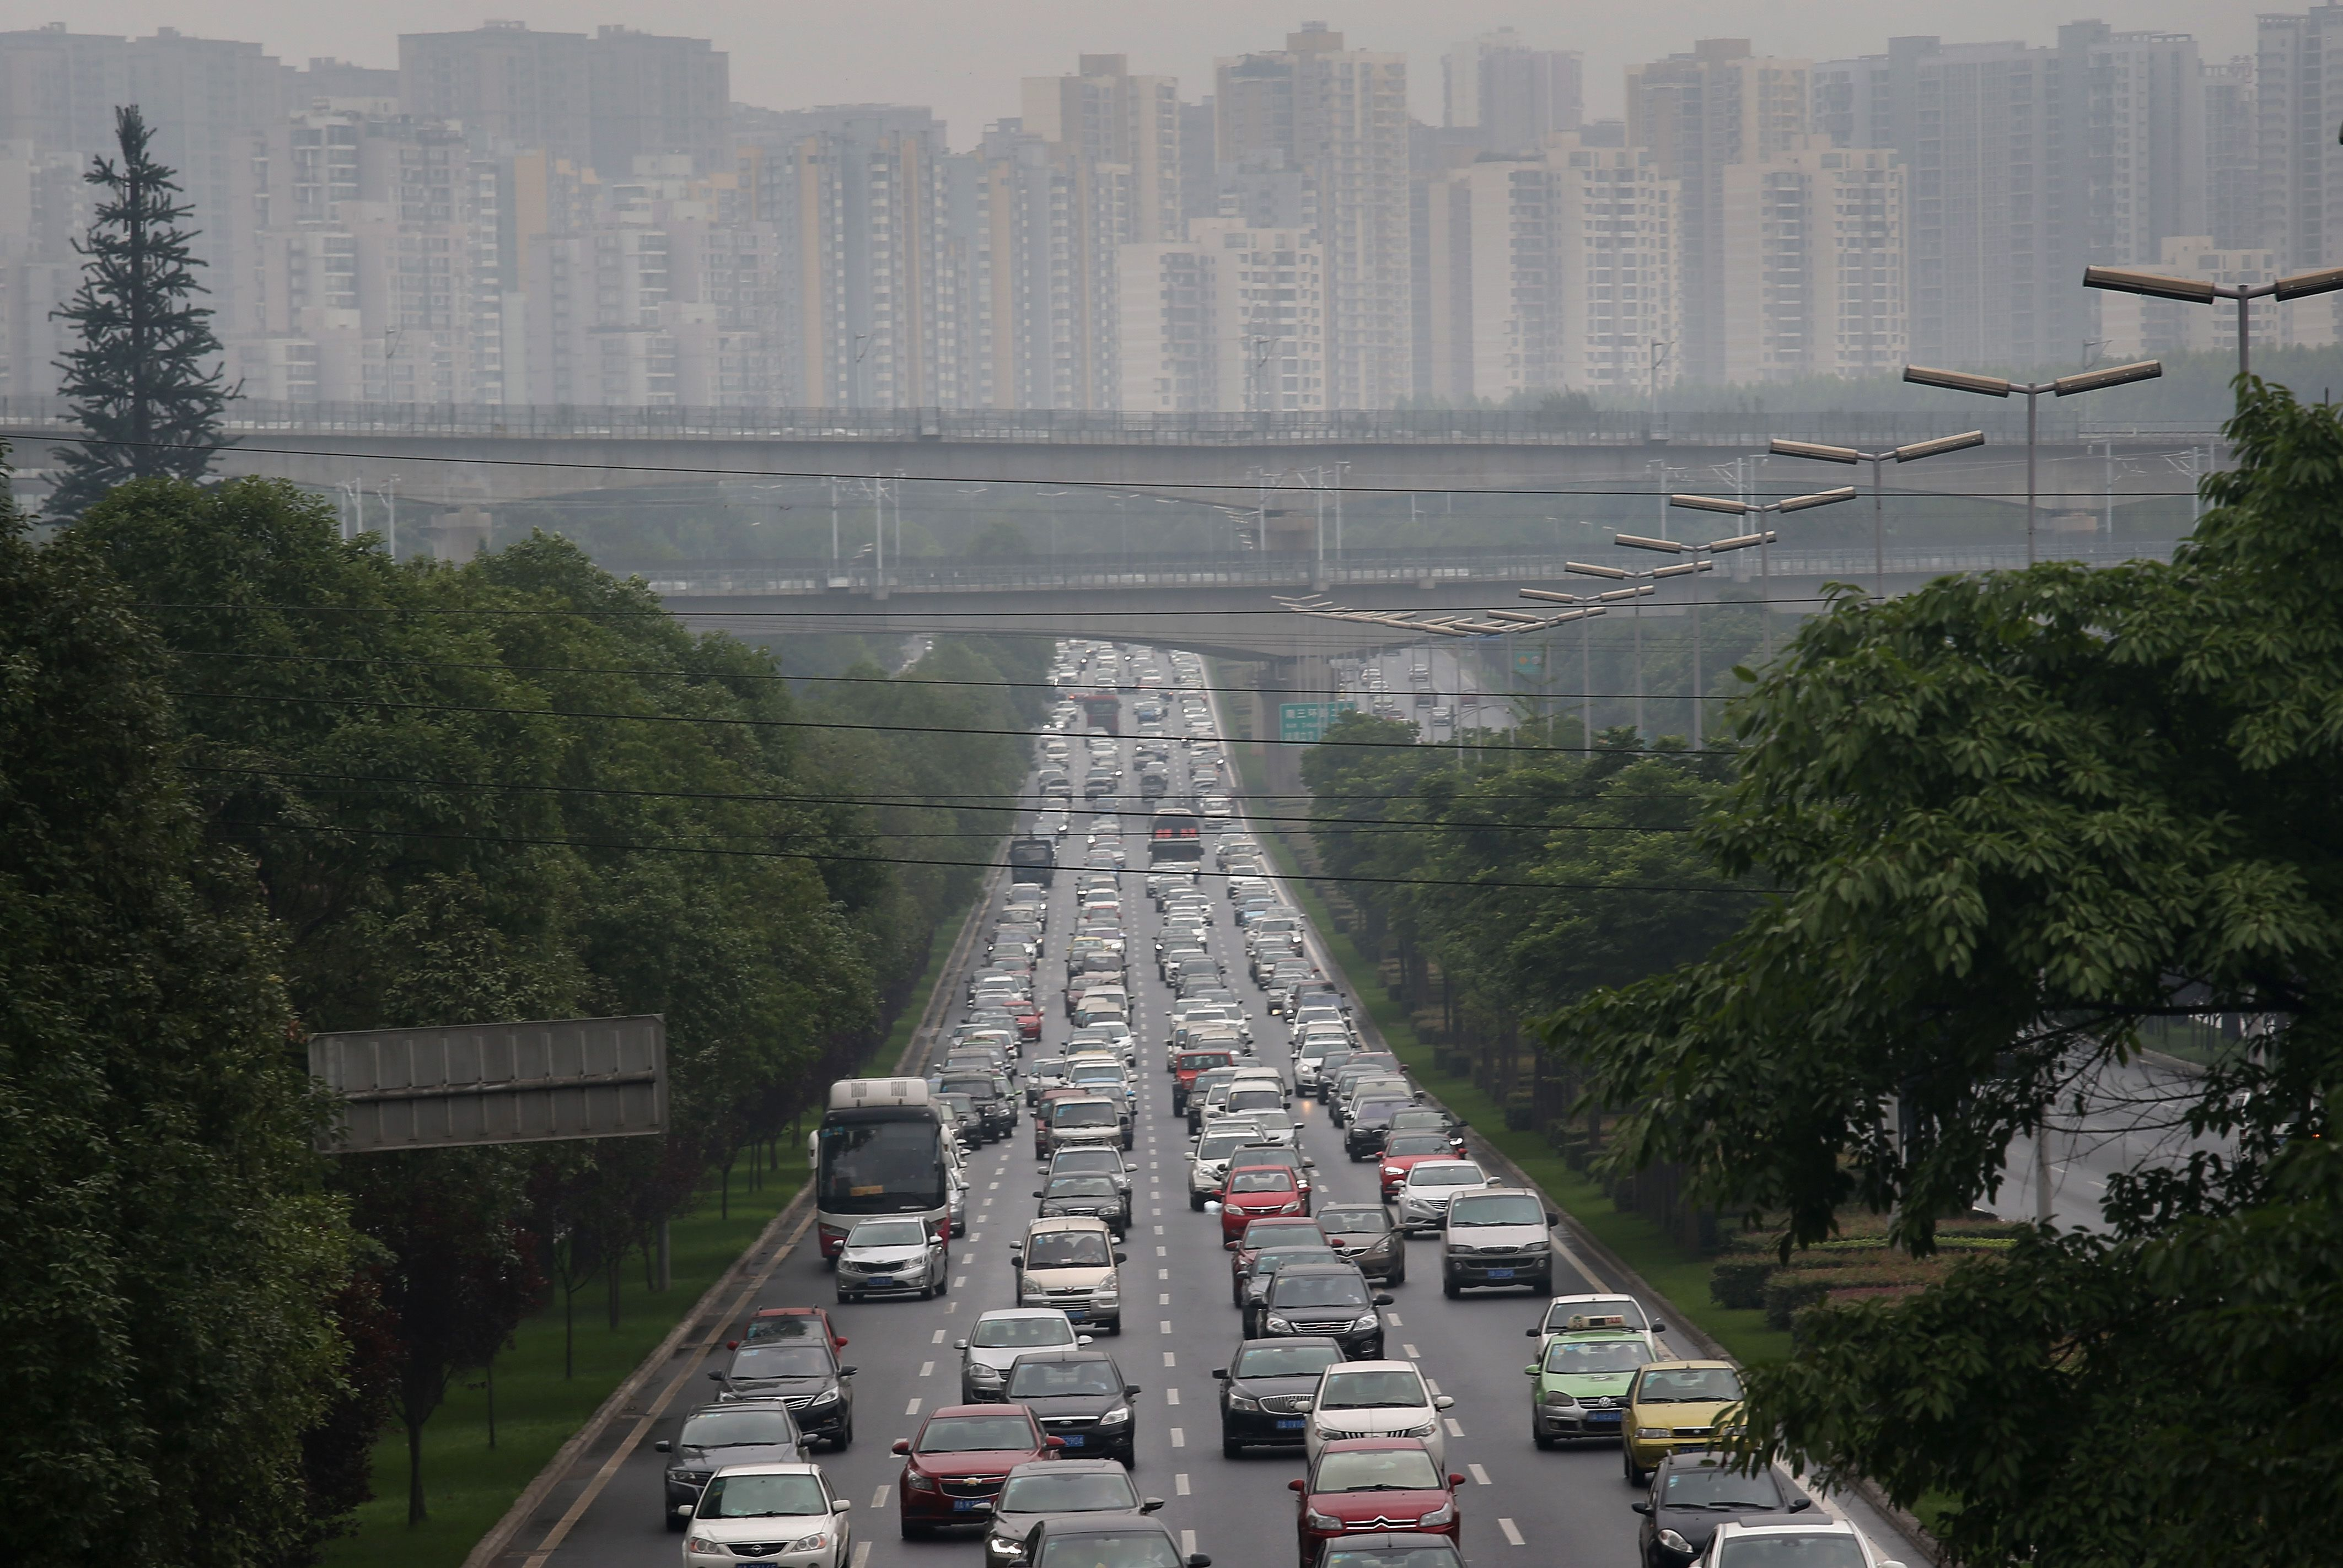 Pollution and traffic are part of the life in Chengdu, China in 2015